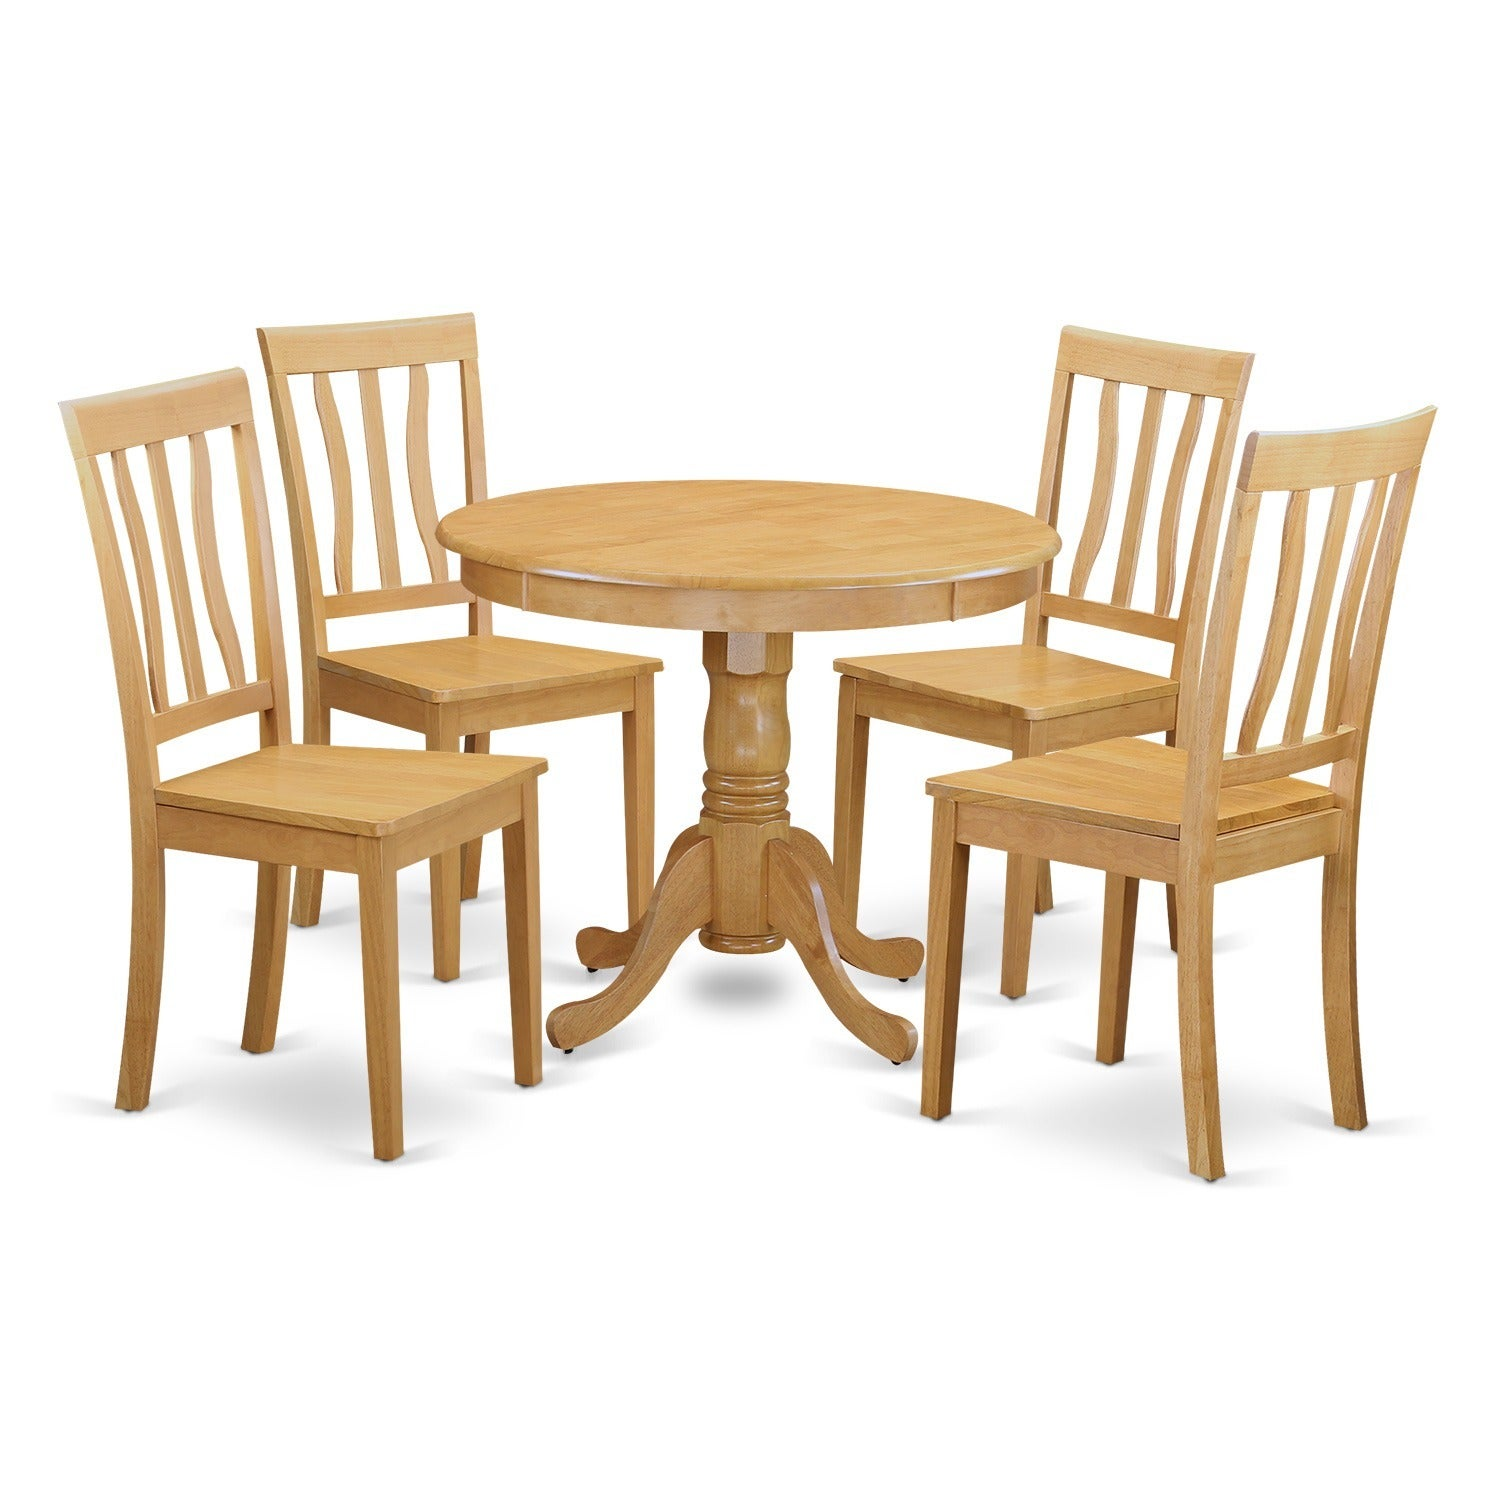 Oak Small Kitchen Table and 4 Chairs Dining Set (Oak), Br...